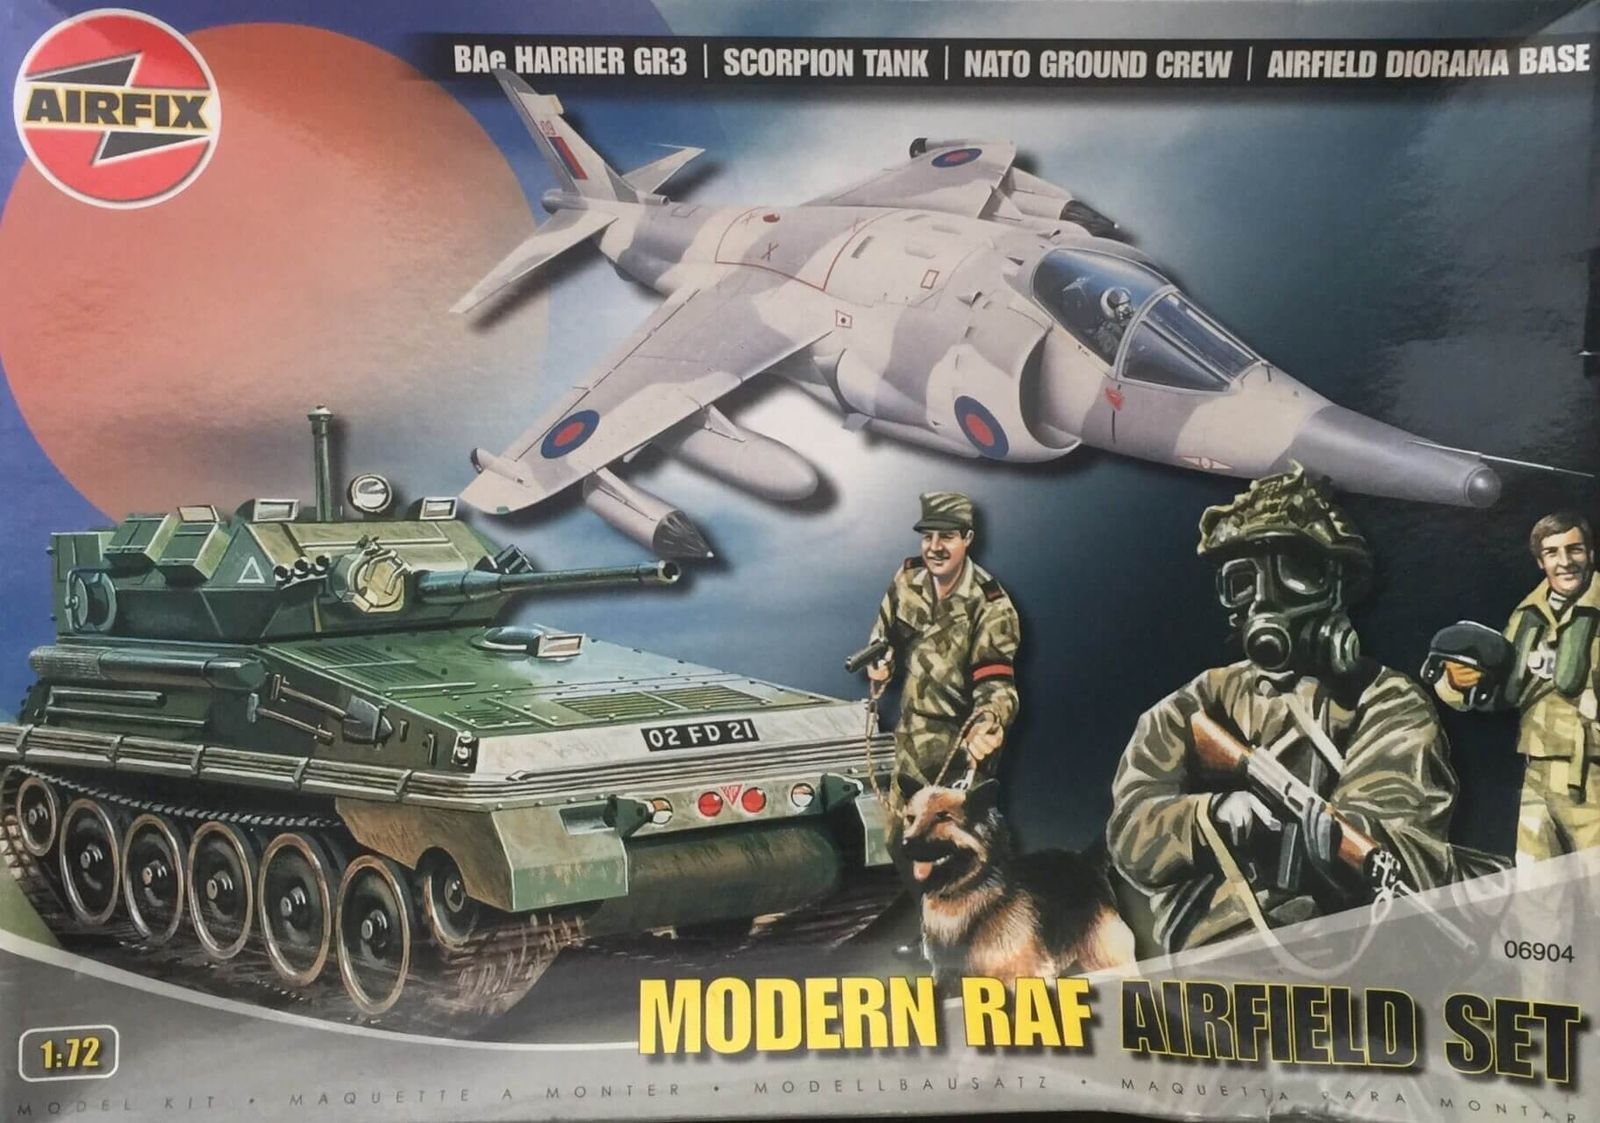 Modern RAF Airfield Set